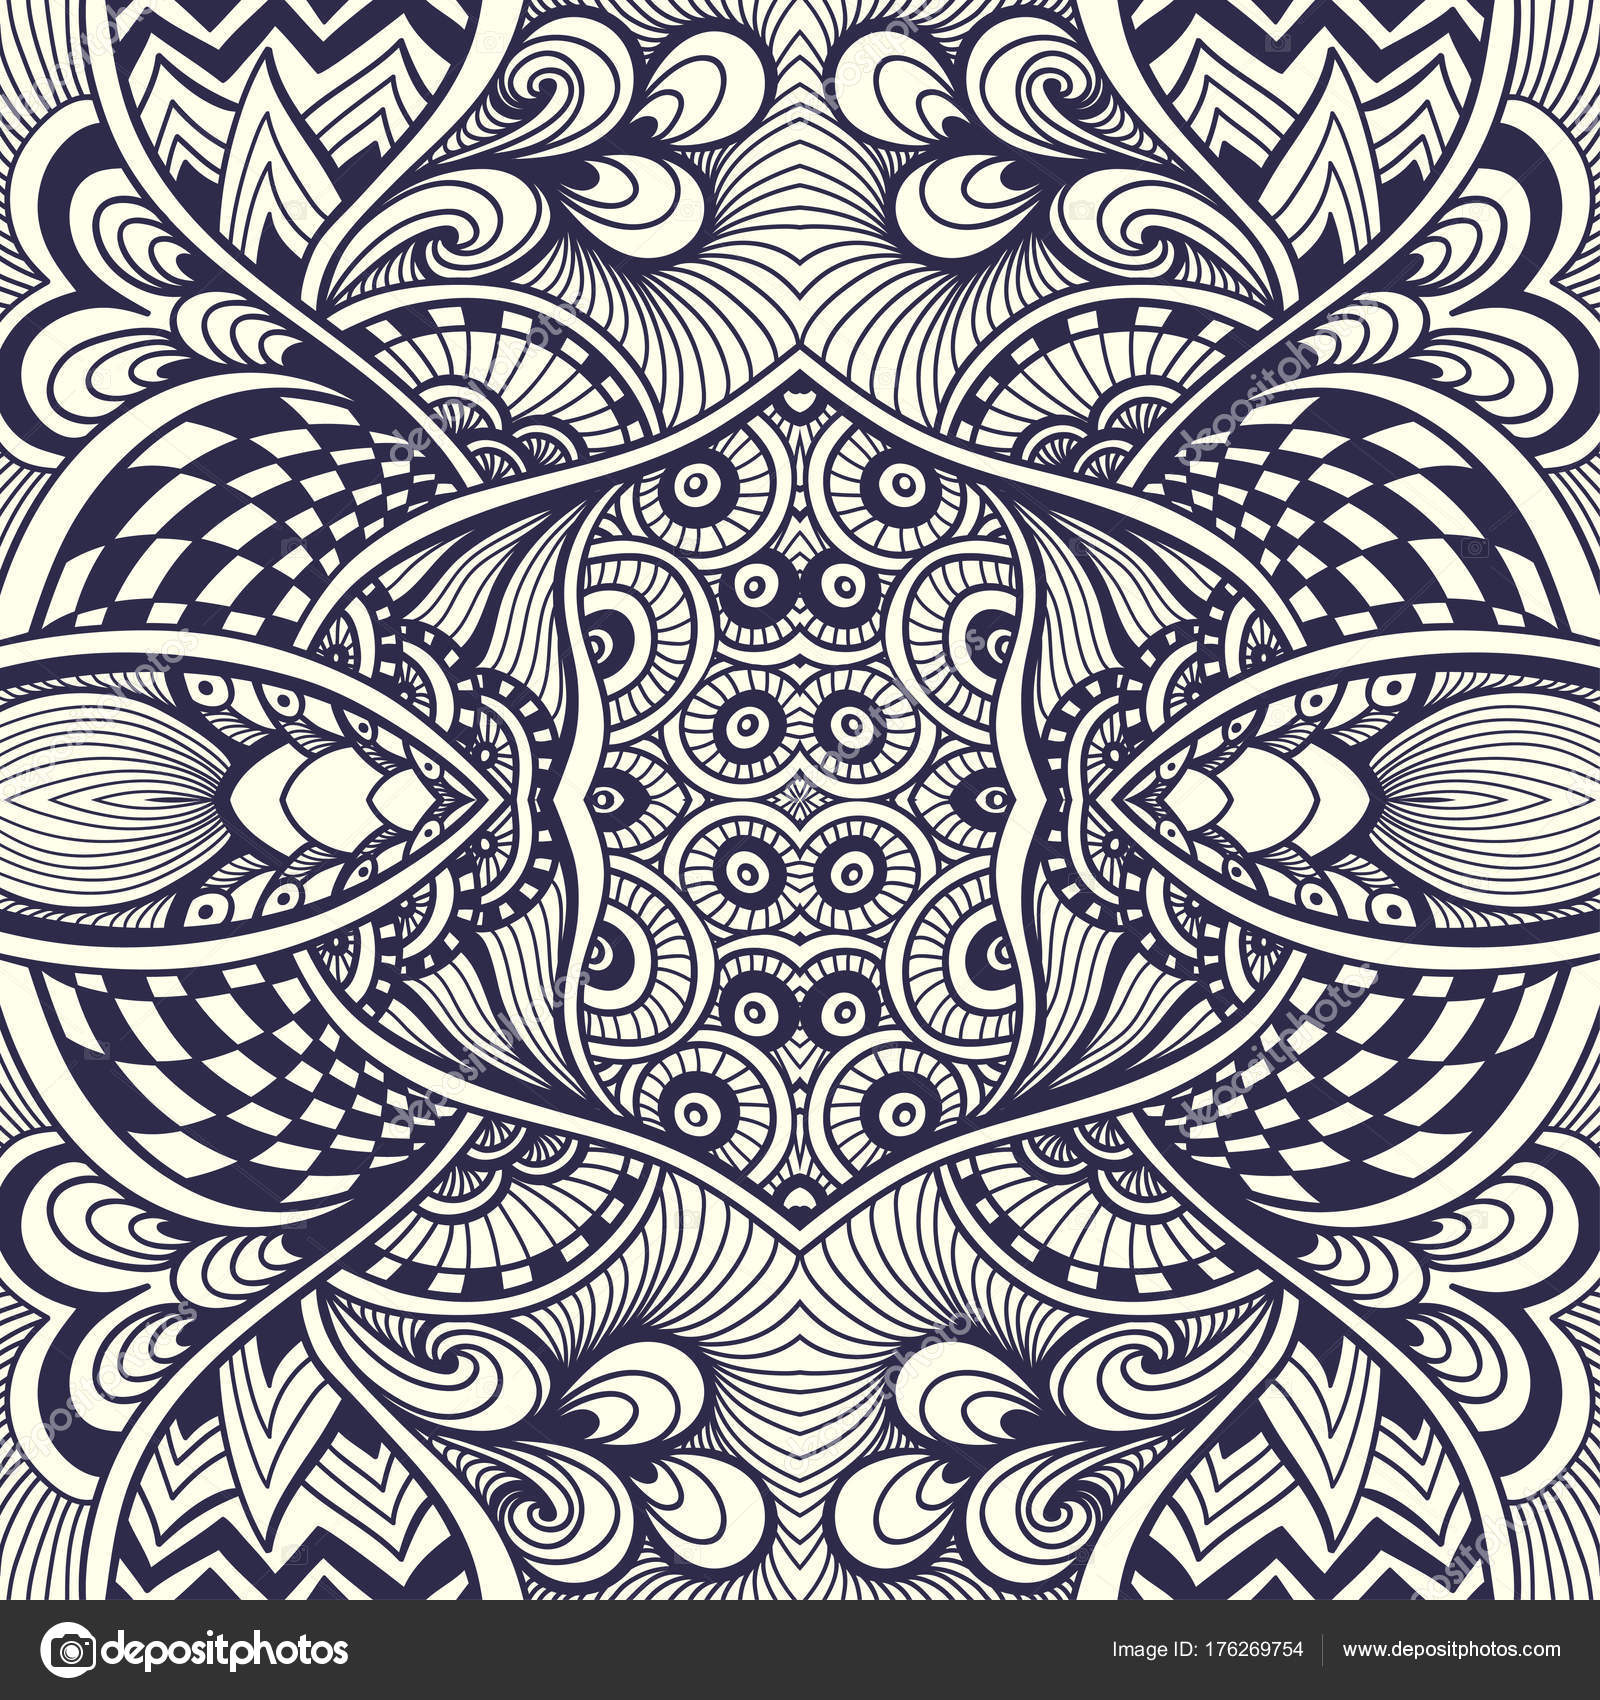 Abstract Handmade Zentangle Zendoodle Seamless Pattern Black White